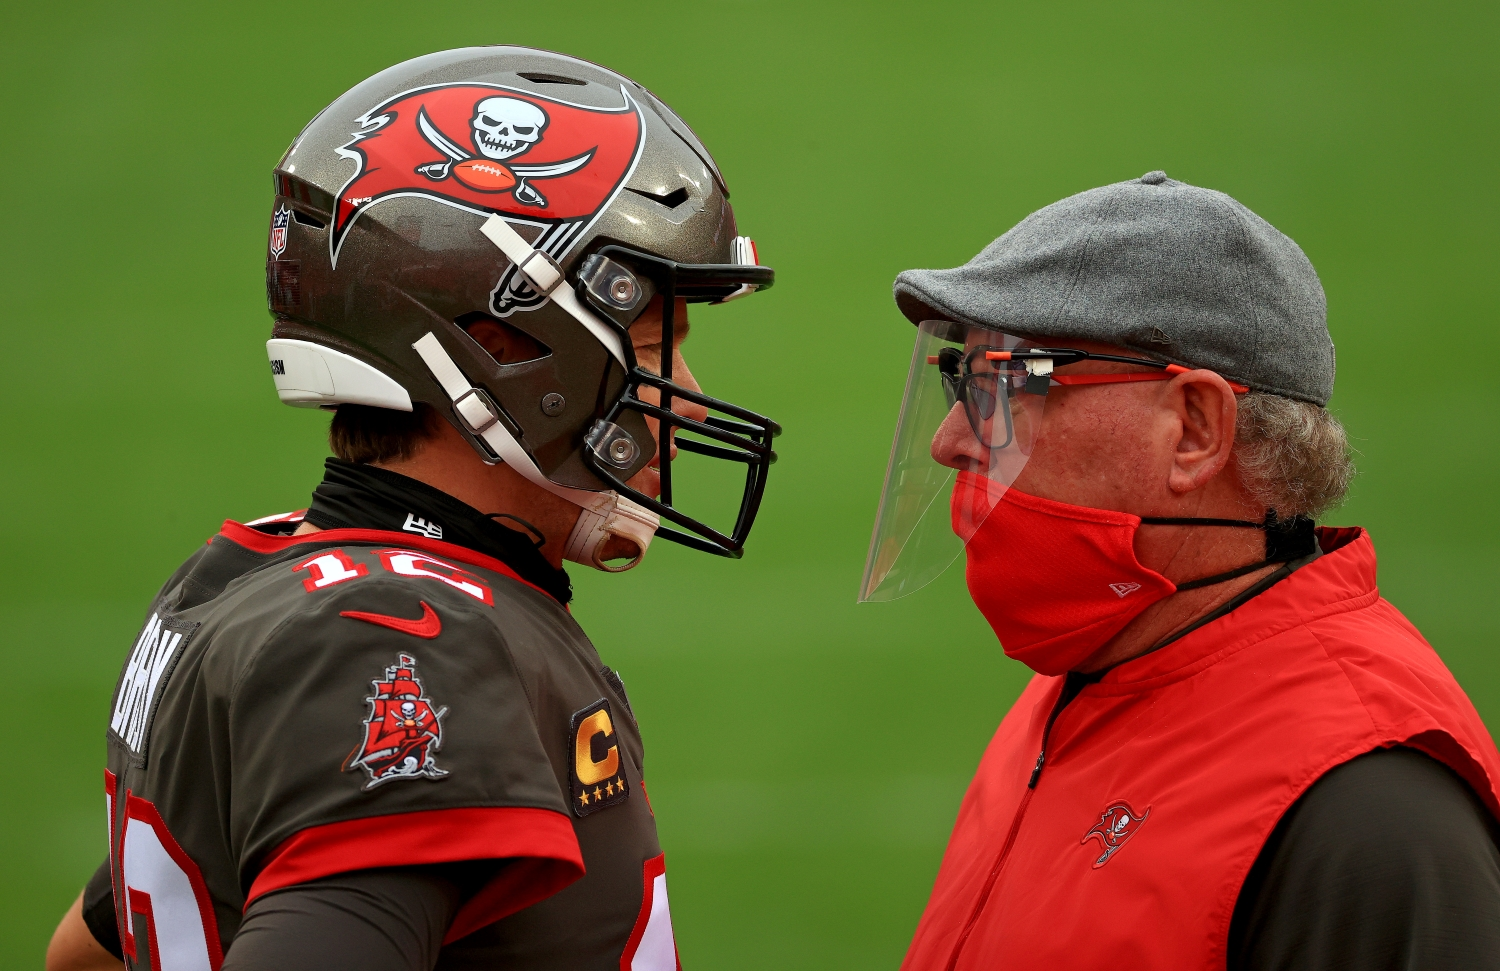 Bruce Arians Just Taught NFL Coaches a Valuable Lesson by Bowing Down to Tom Brady